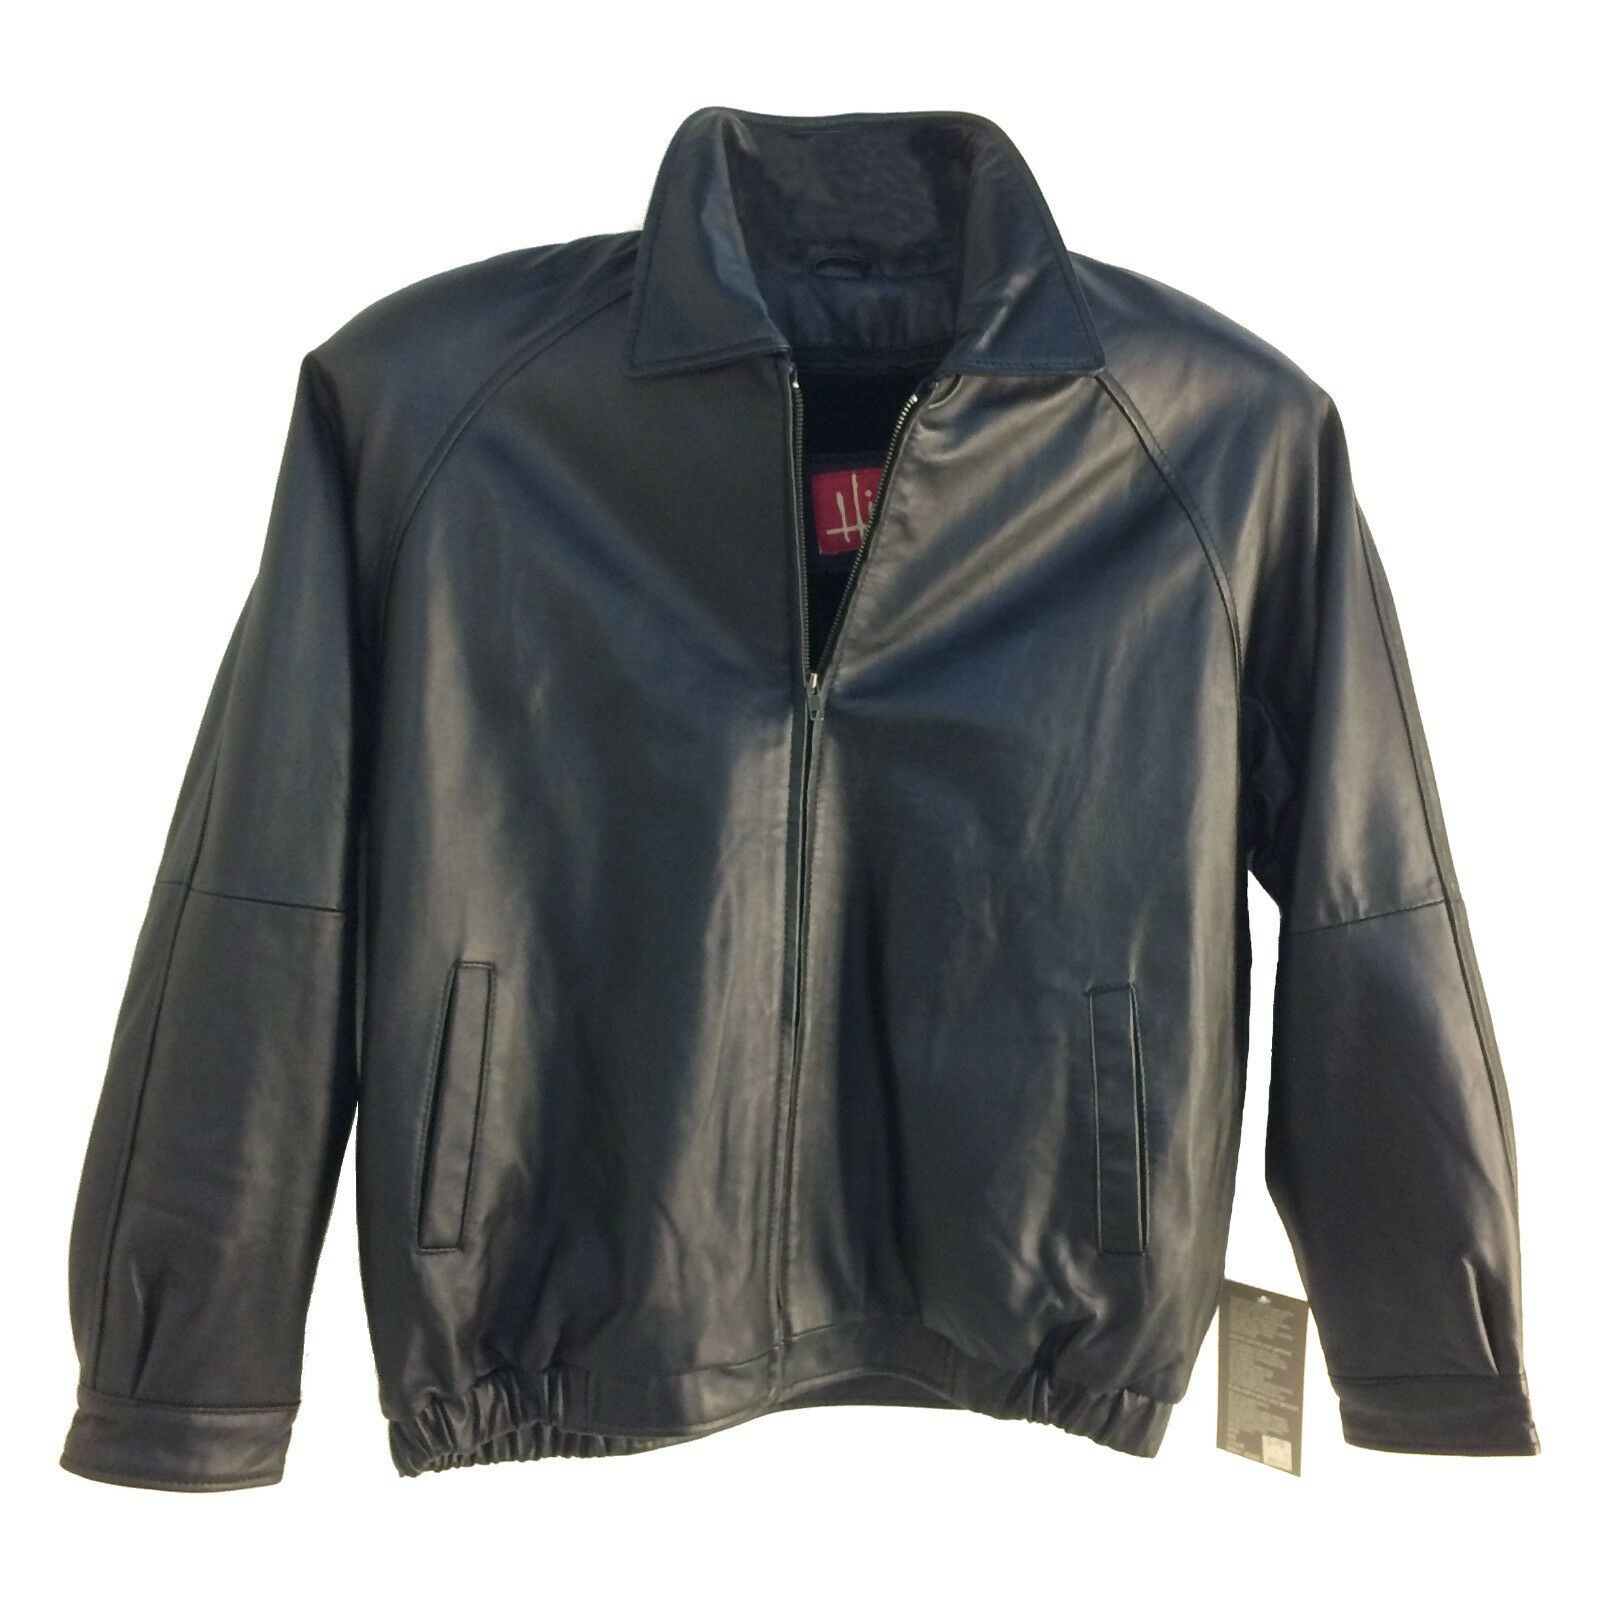 Assorted Brands ,Vintage, Men's Genuine Leather Bomber (Short) Jacket, Group-2 image 2